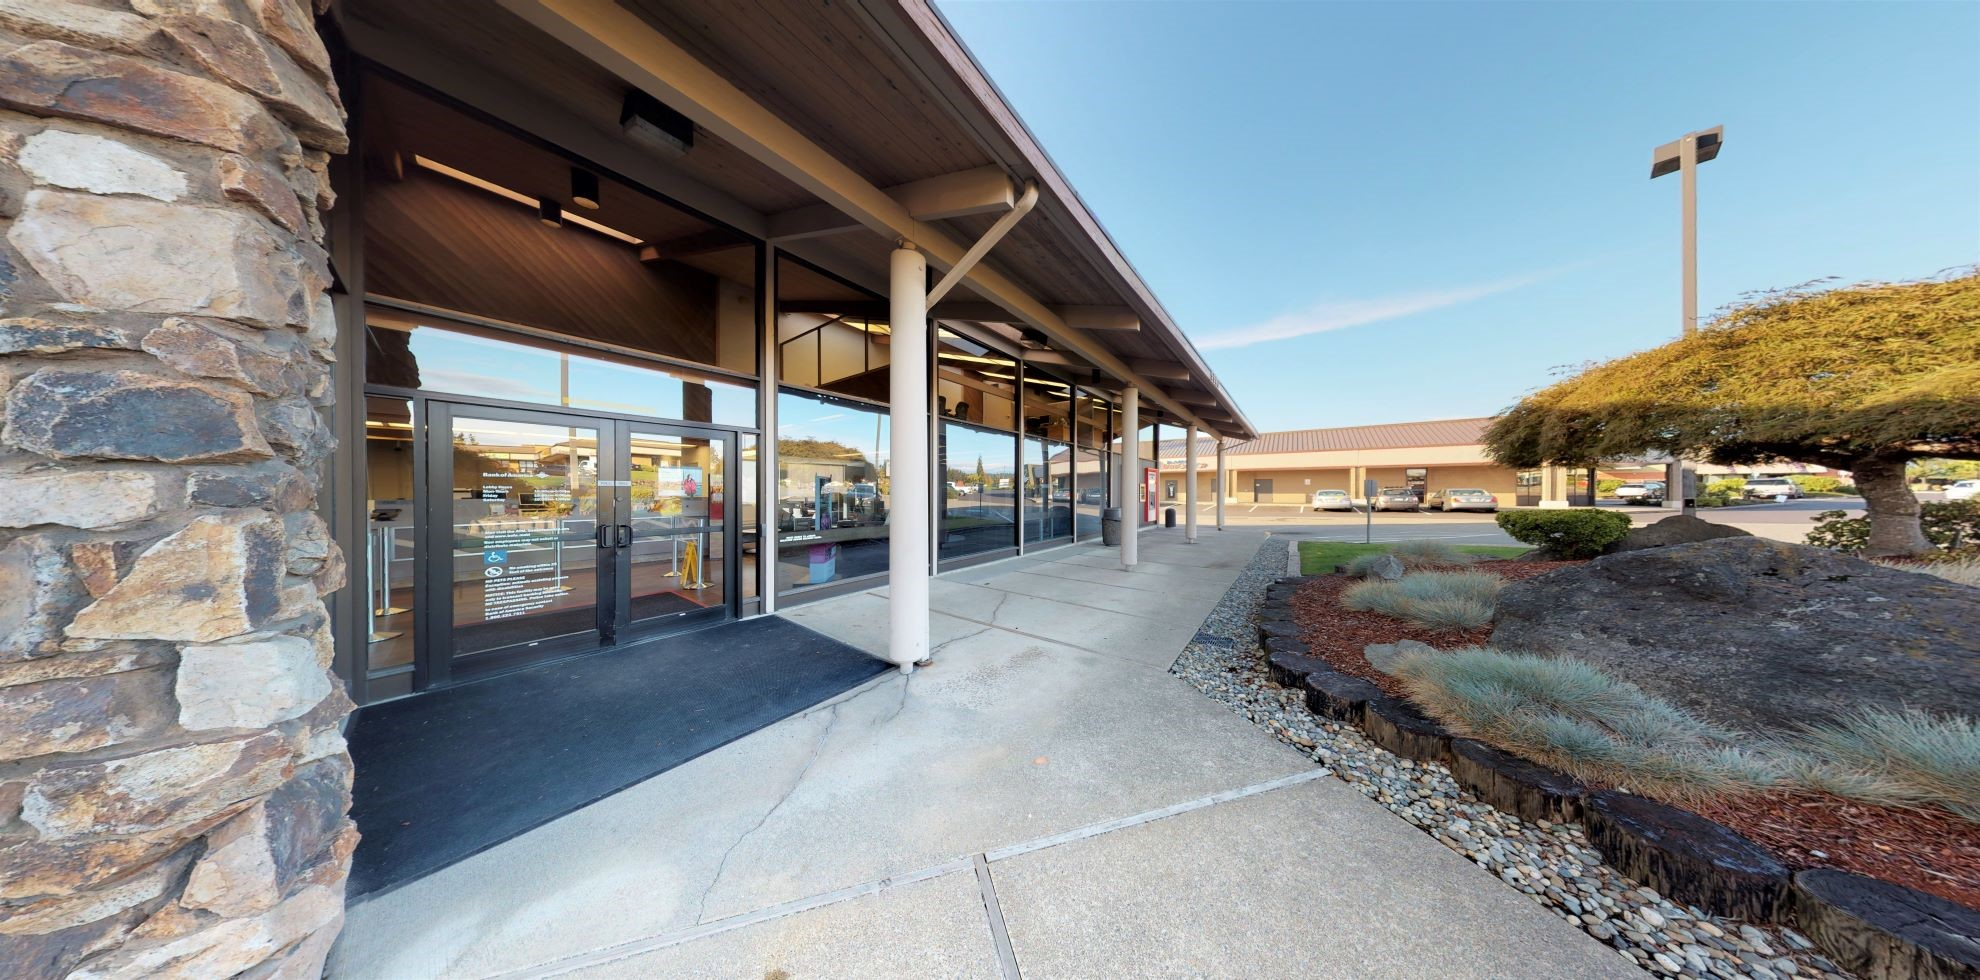 Bank of America financial center with drive-thru ATM | 9981 Silverdale Way NW, Silverdale, WA 98383